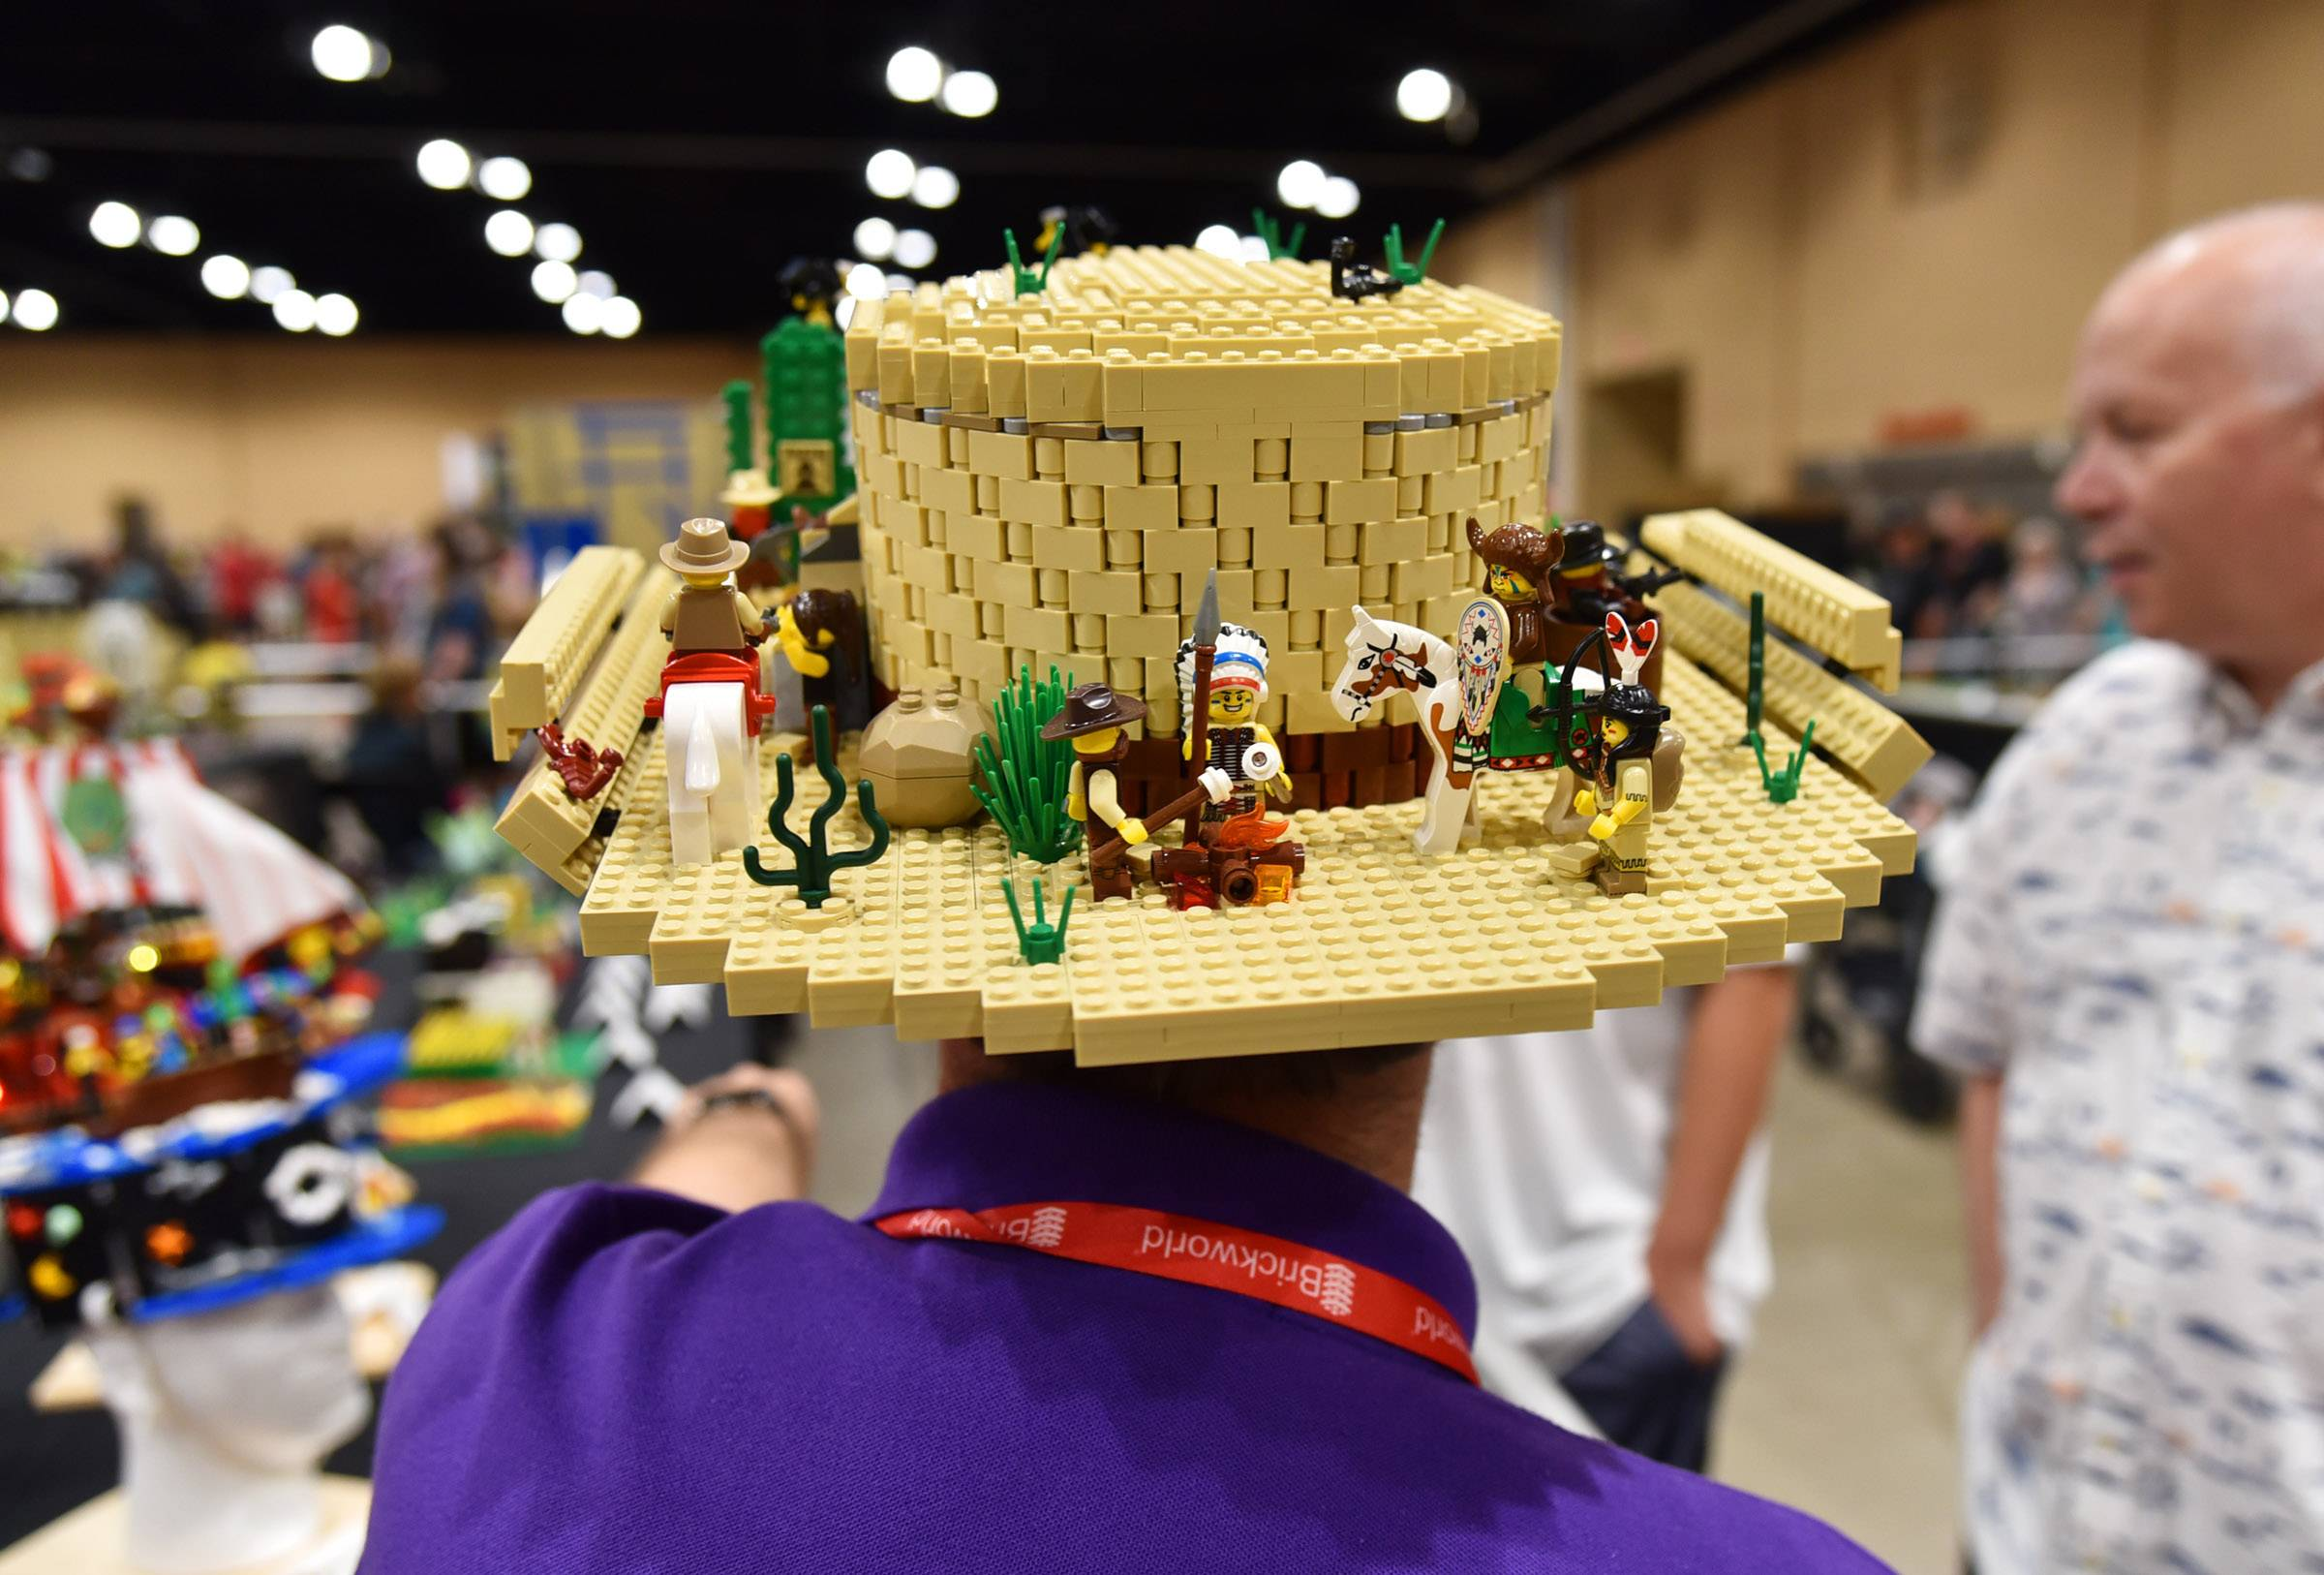 Mike Schmidt of Cincinnati wears his gambler-style western hat, made entirely from Lego bricks, on Sunday, at the 10th annual Brickworld Chicago LEGO Exposition at the Schaumburg Renaissance Convention Center. He has made at least a dozen different hats from Legos.